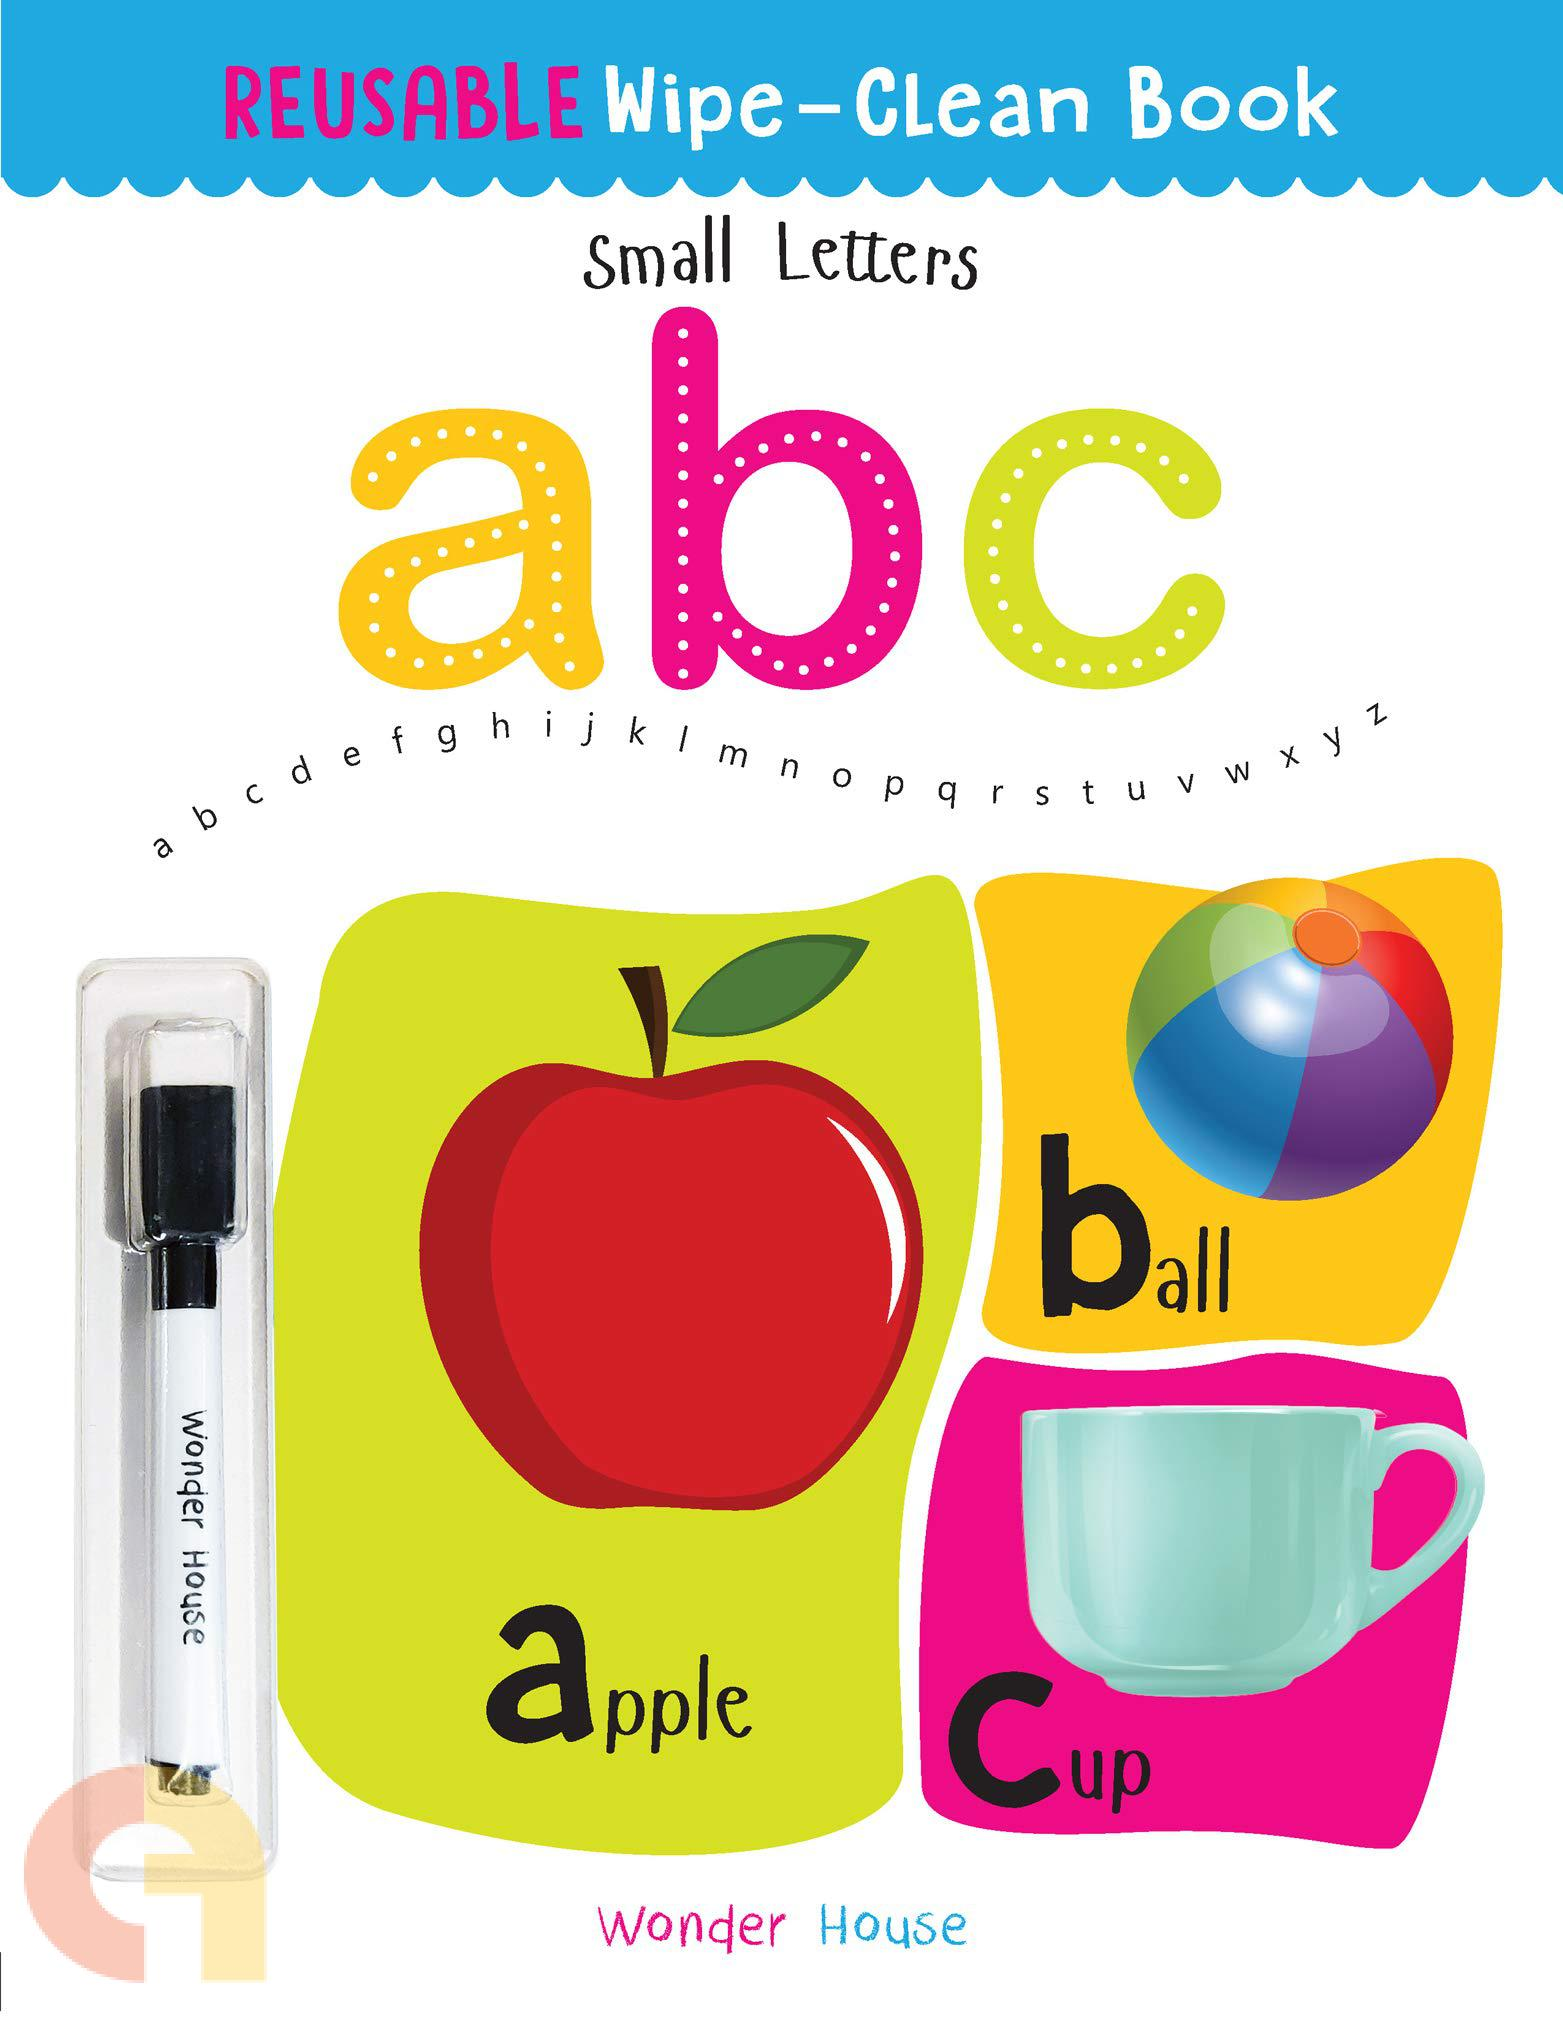 Reusable Wipe And Clean Book: Small Letters